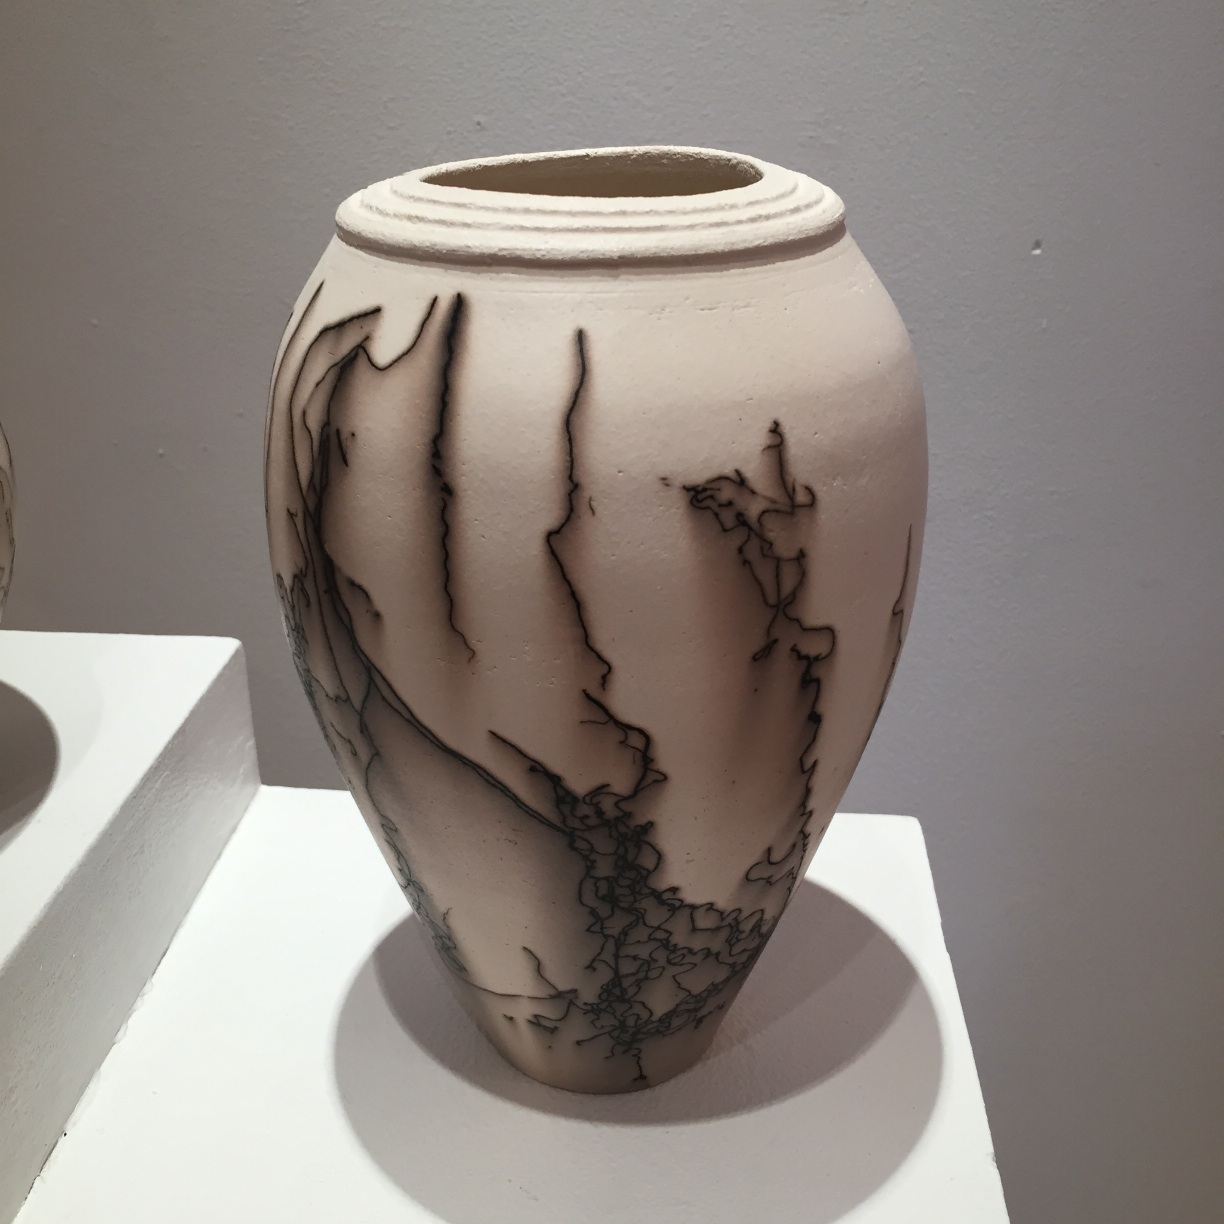 Claire Molloy, Rimmed Vessel, horsehair embellished ceramic, 20x14cm, EUR 90